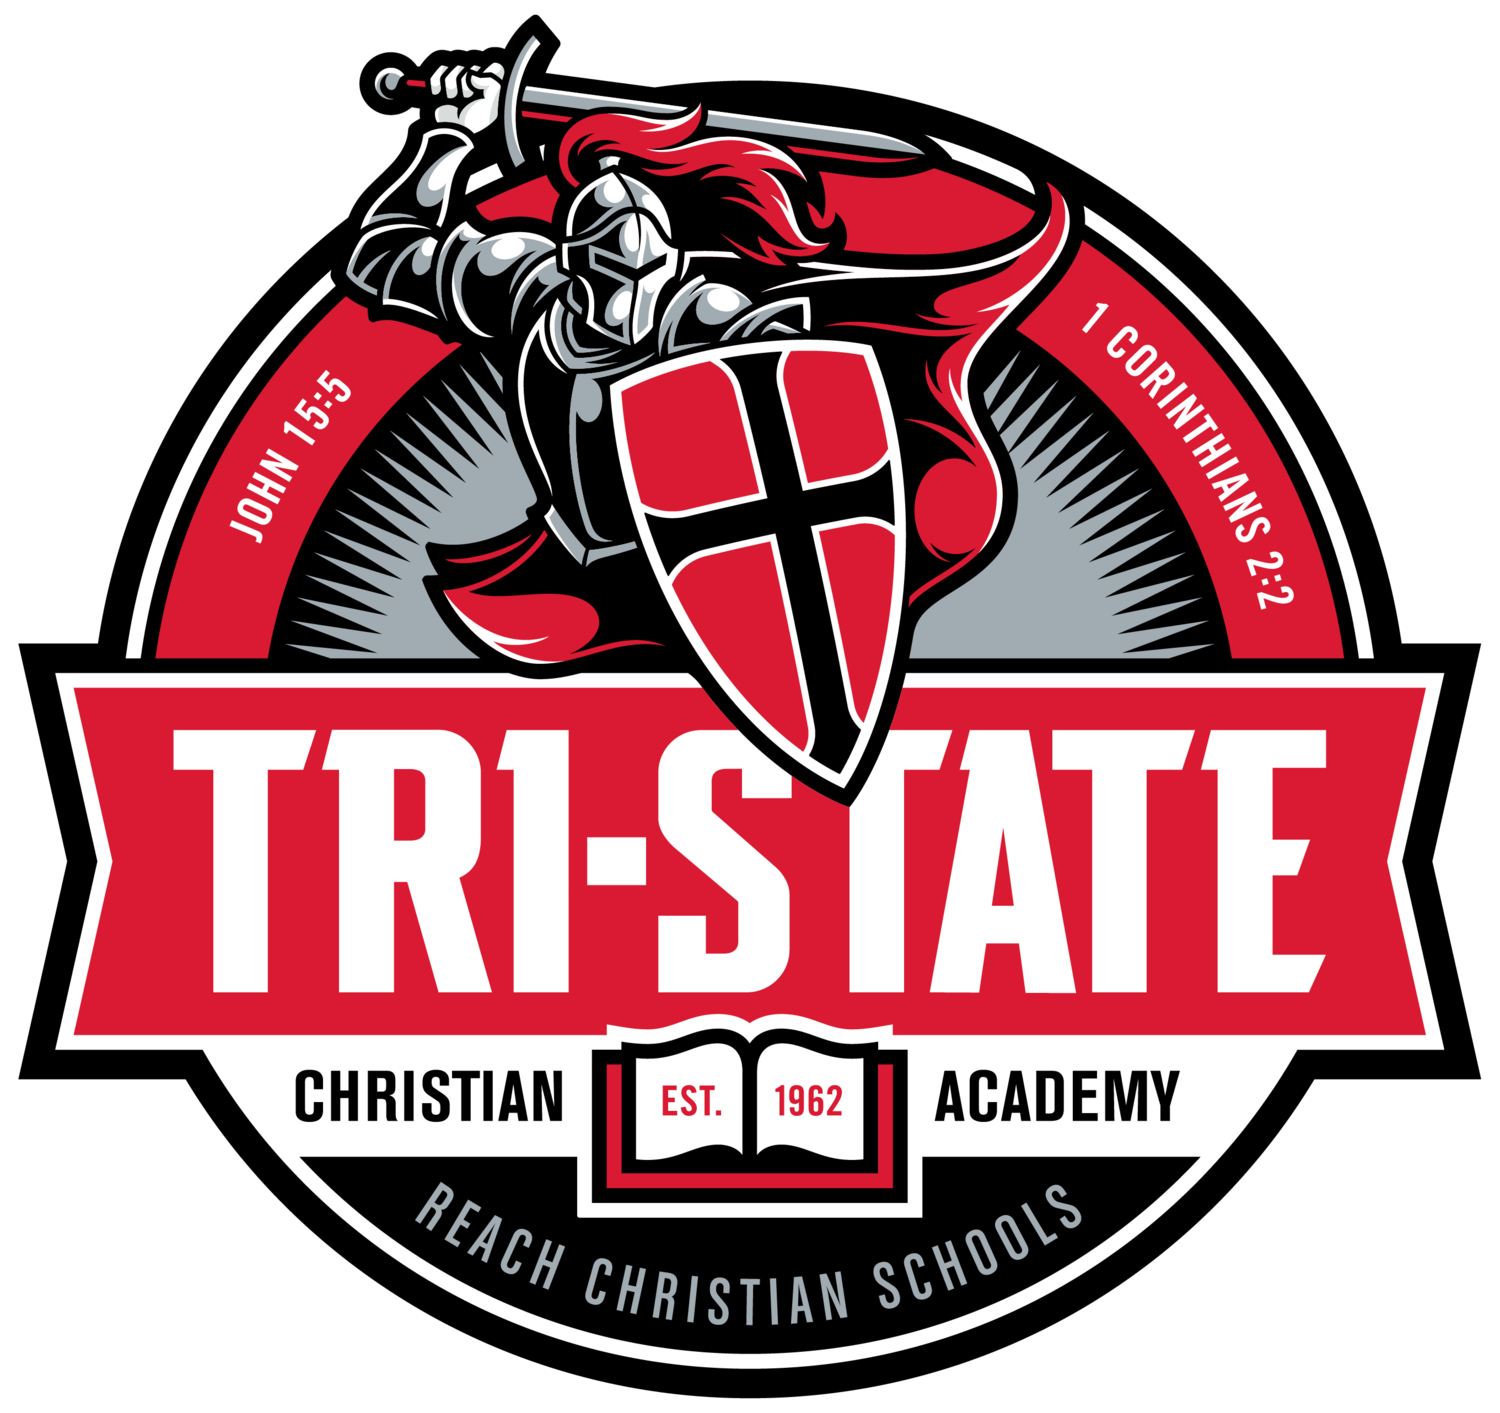 Tri-State Christian Academy | ACSI Christian Academy located in Elkton, MD